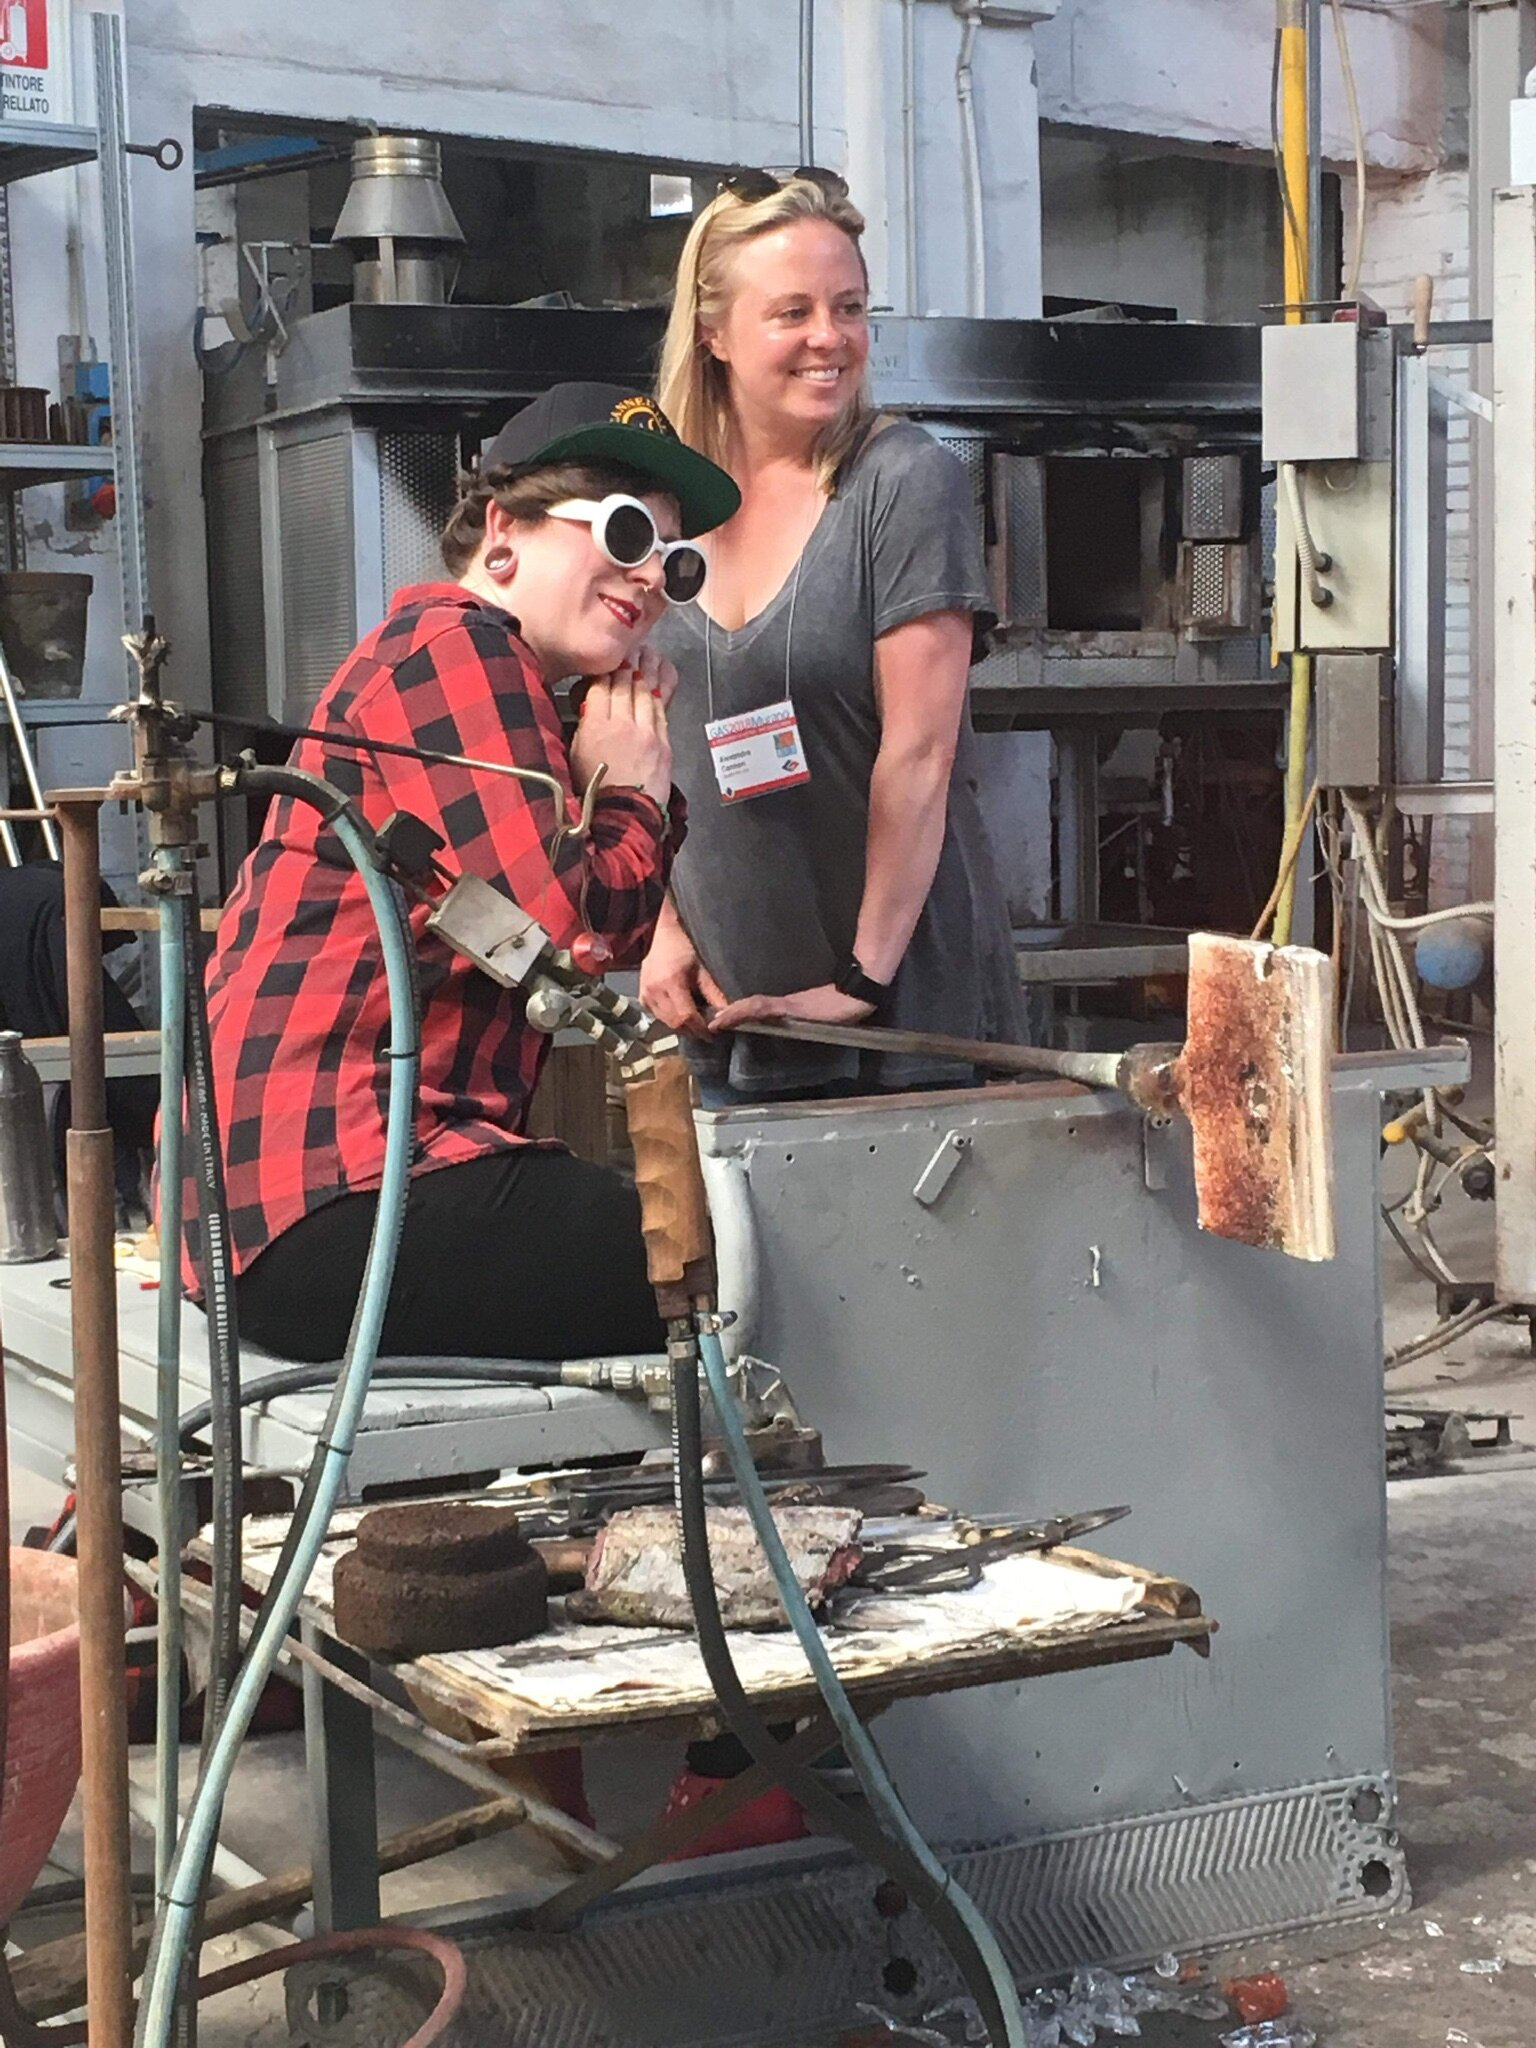 Morgan Peterson Demonstrating at the glass art conference in Murano Venice